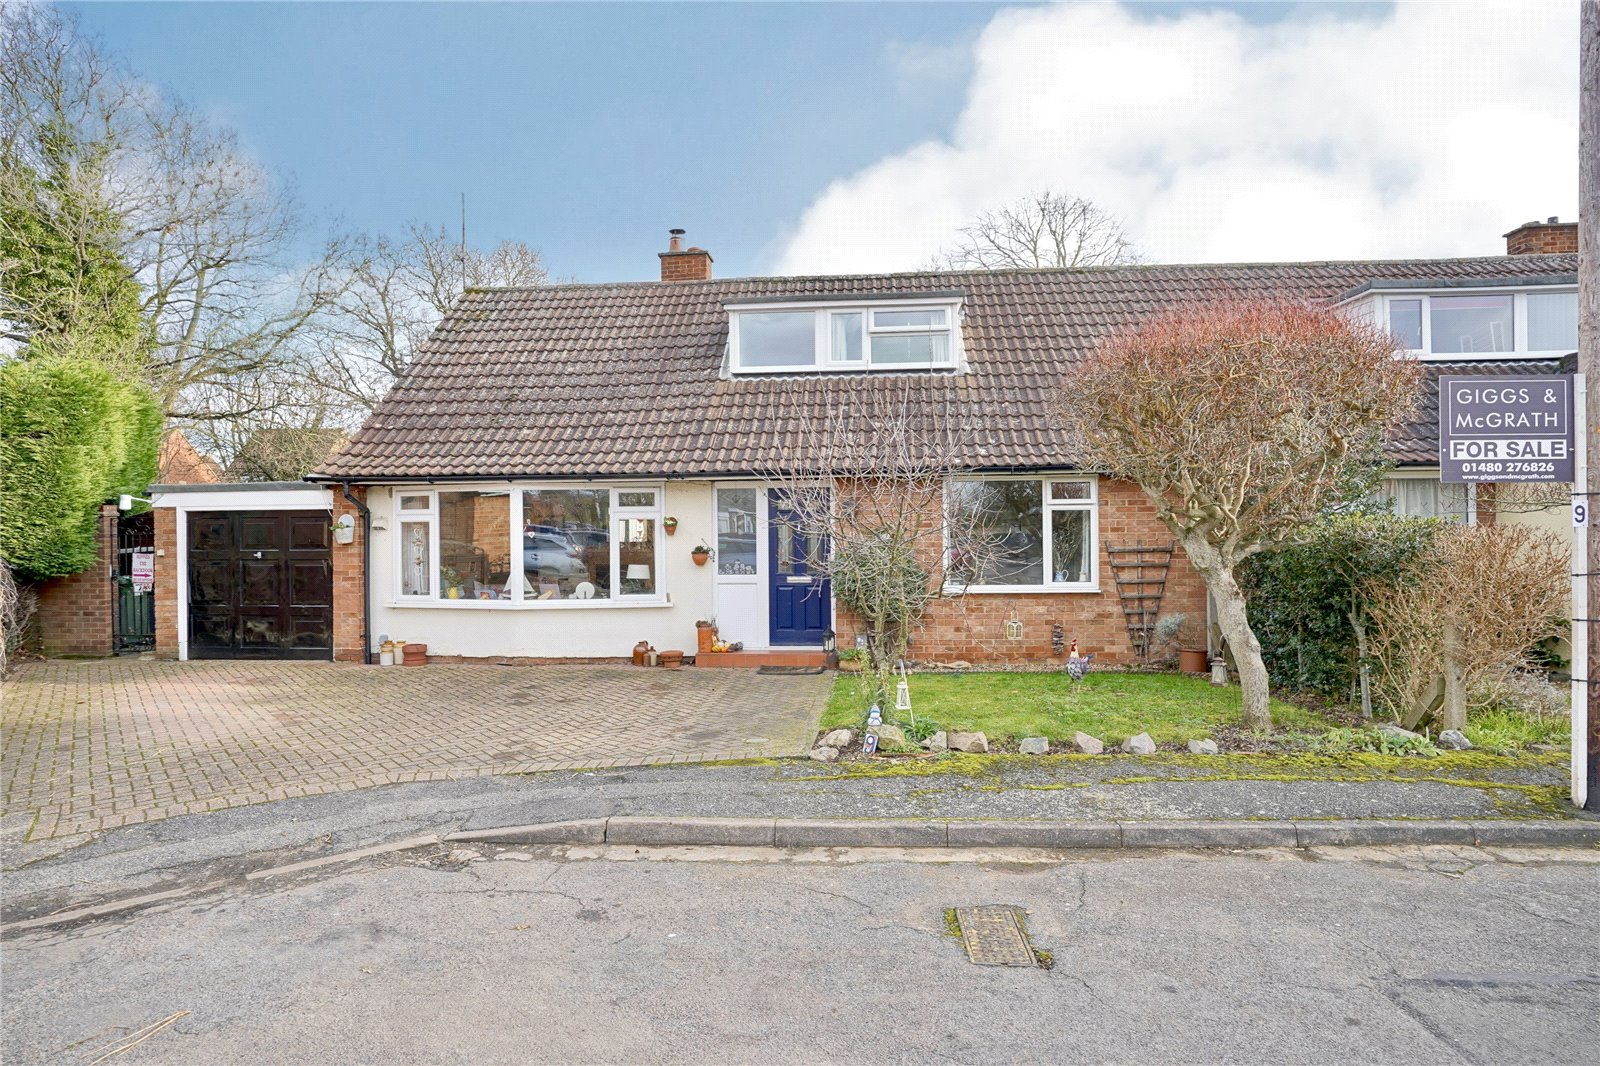 3 bed house for sale in Hemingford Grey, PE28 9BS 2